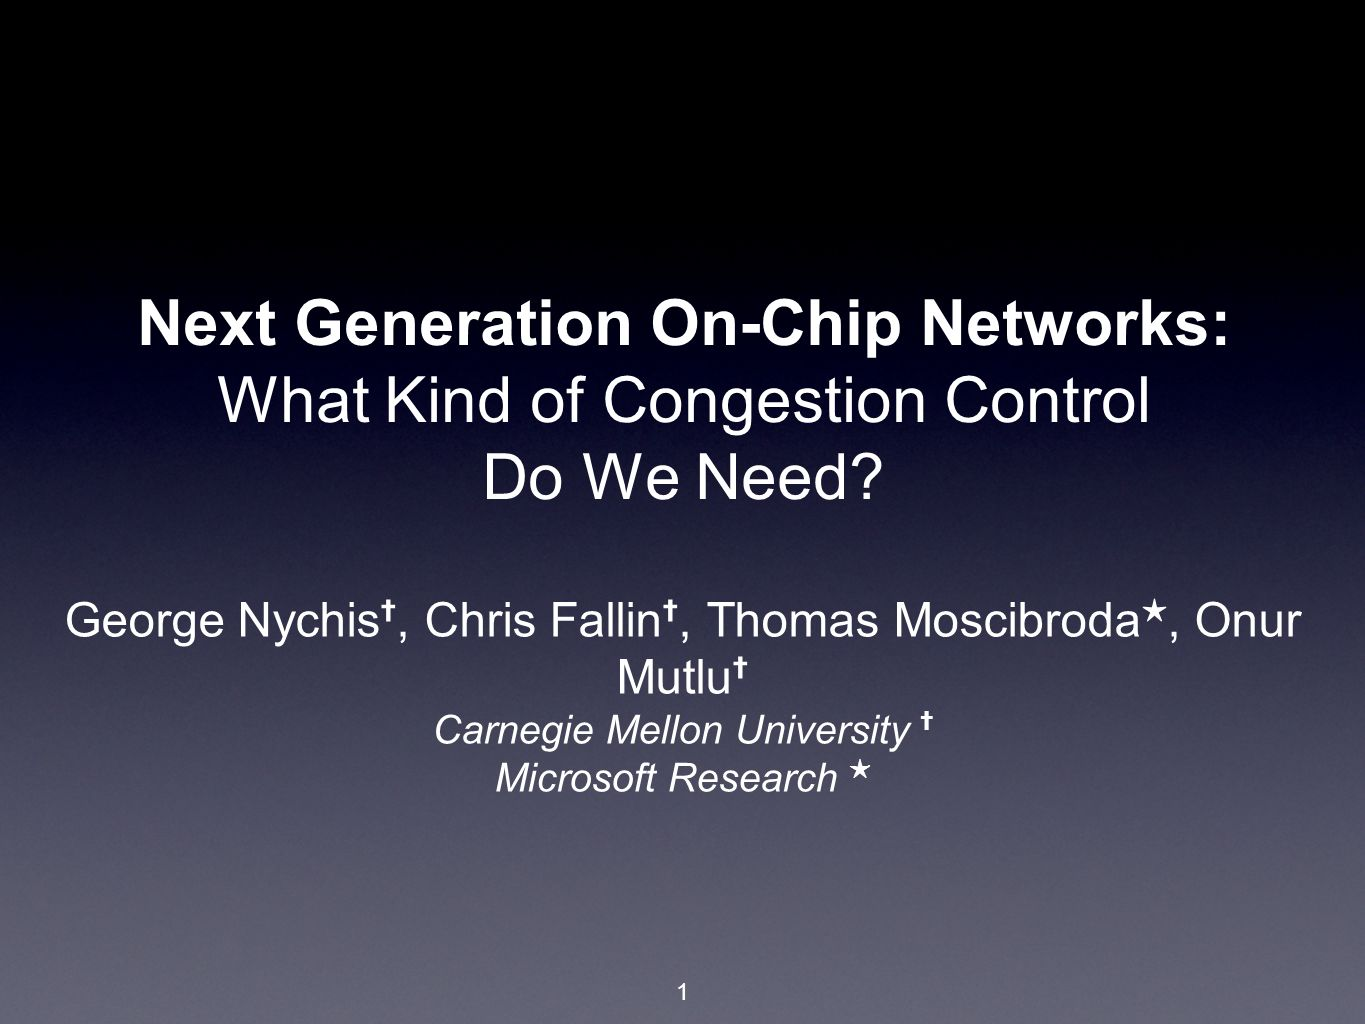 Next Generation On-Chip Networks: What Kind of Congestion Control Do We Need